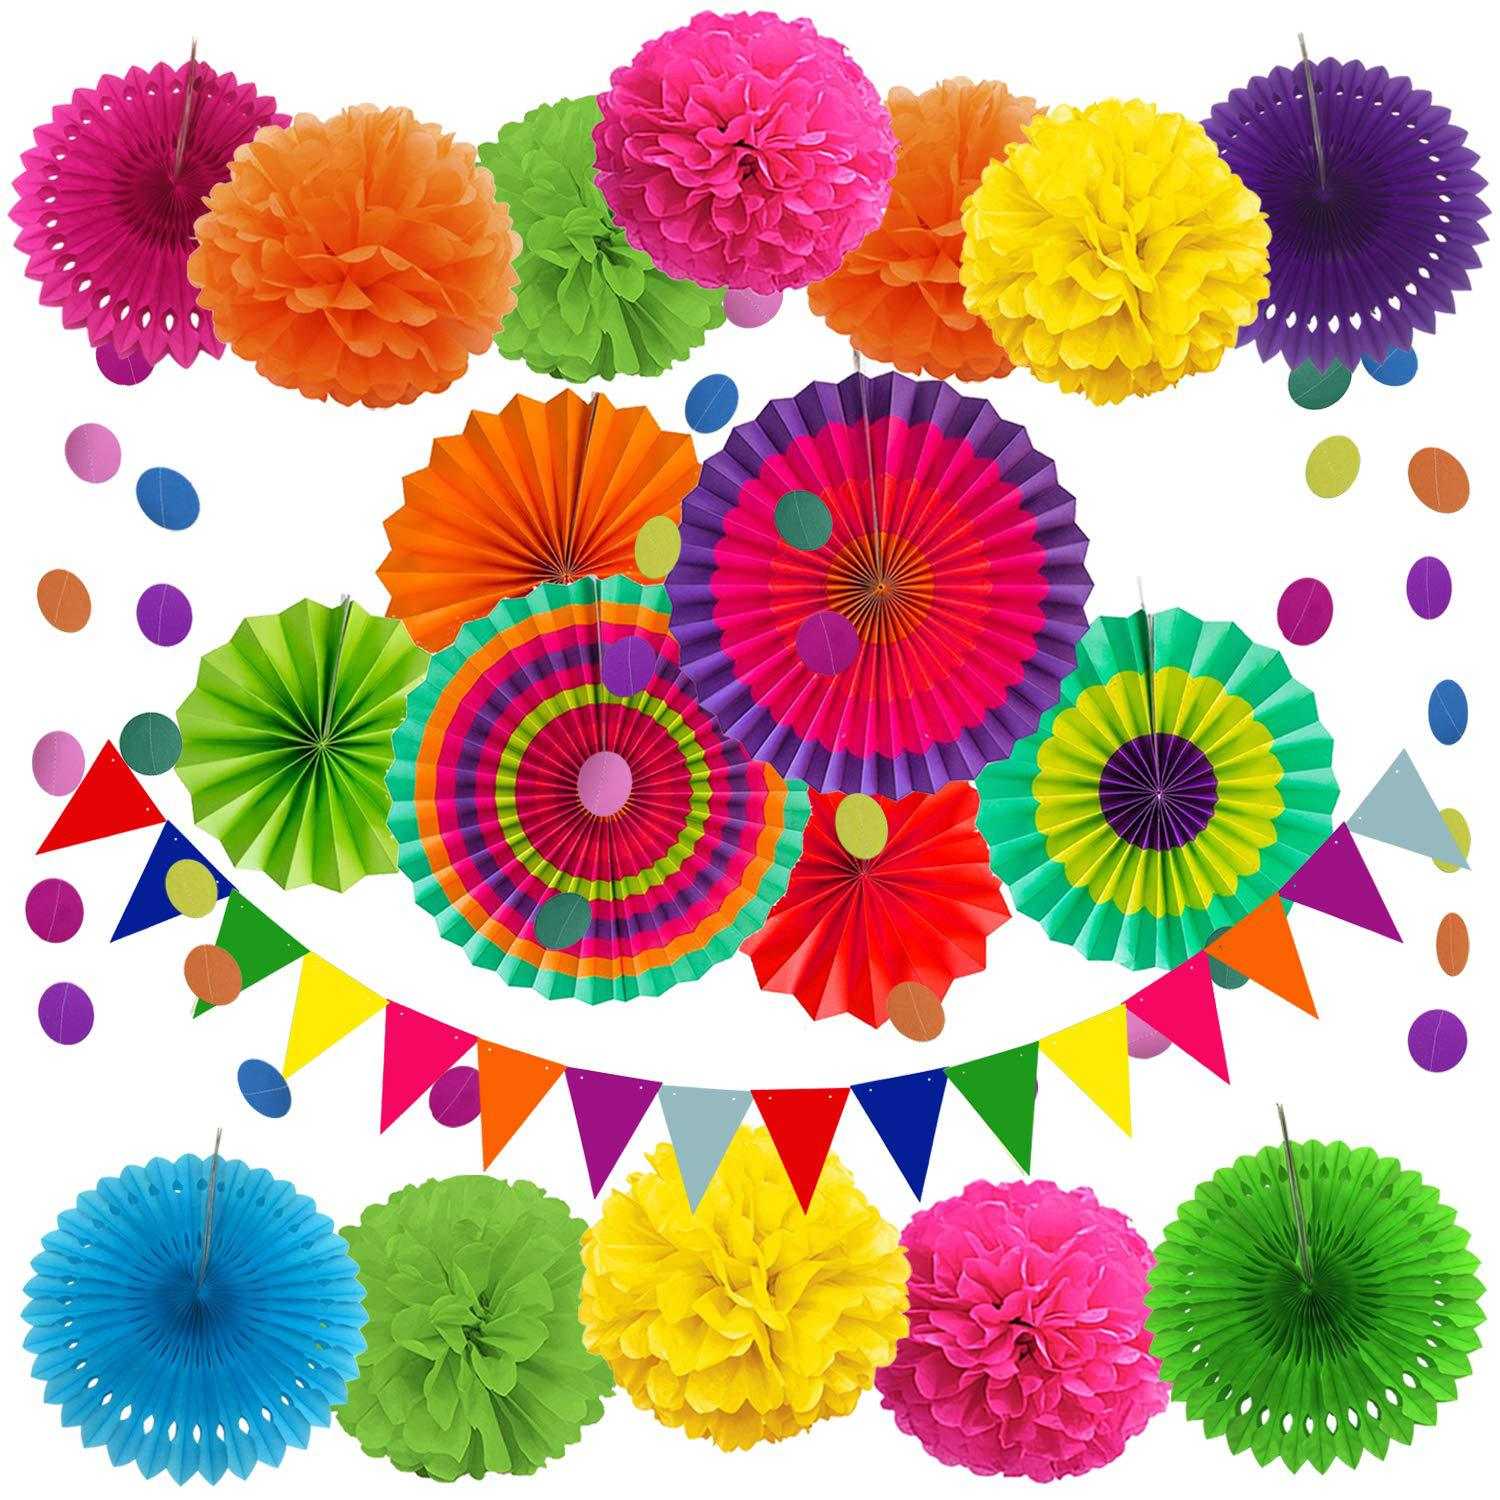 Colorful Tissue Paper Pom-poms Fans Flower Craft Triangle Bunting For Wedding Baby Shower Birthday Party DIY Decoration Supplies